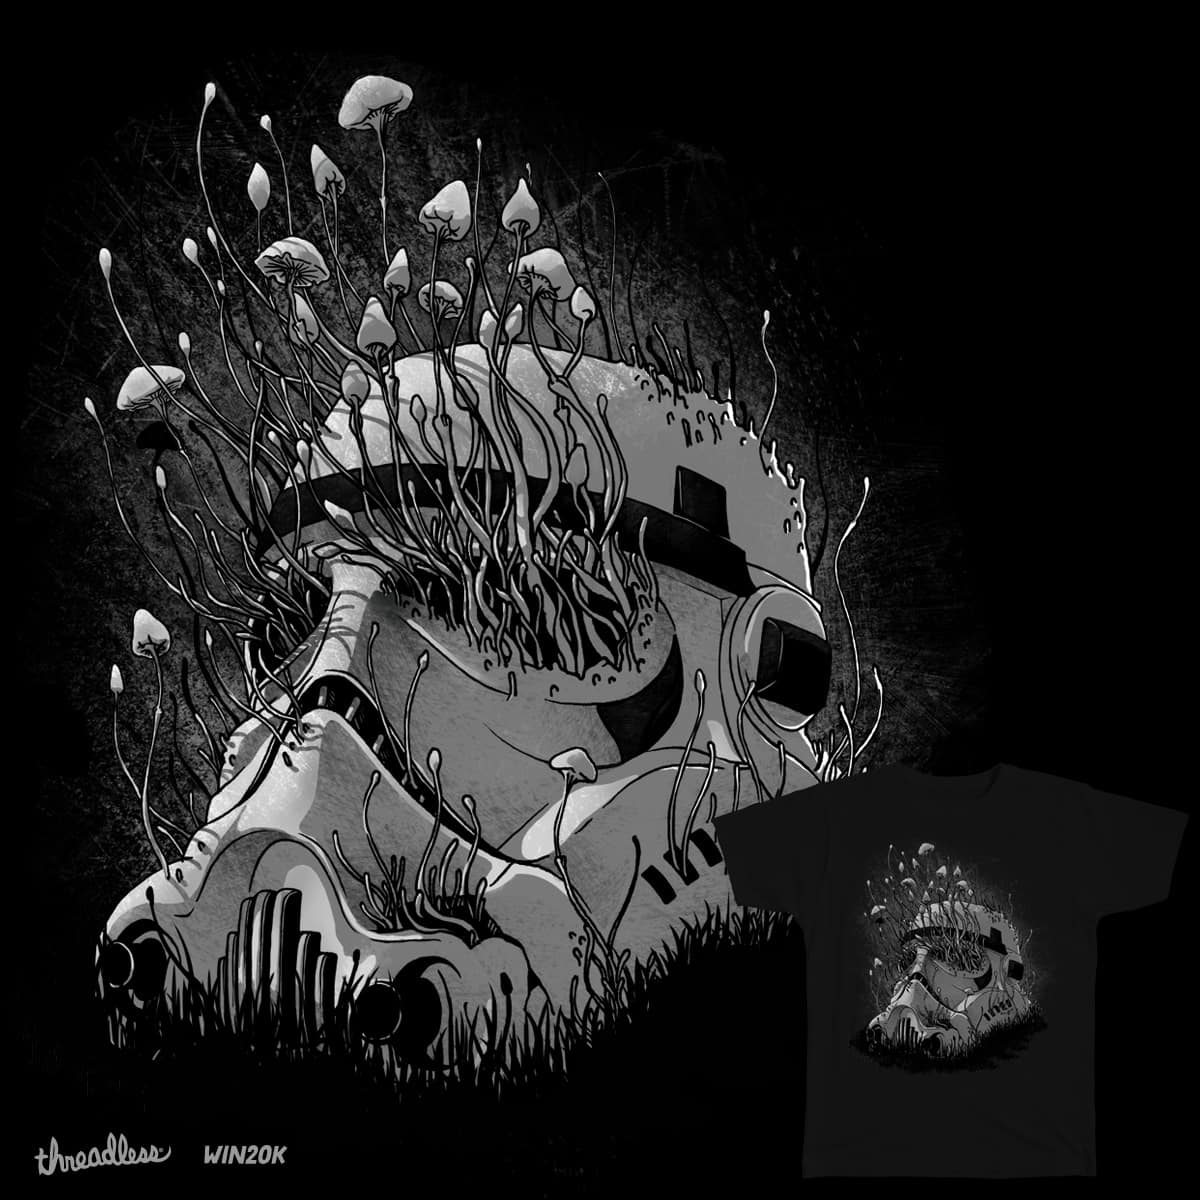 Shroom Trooper by angrymonk on Threadless